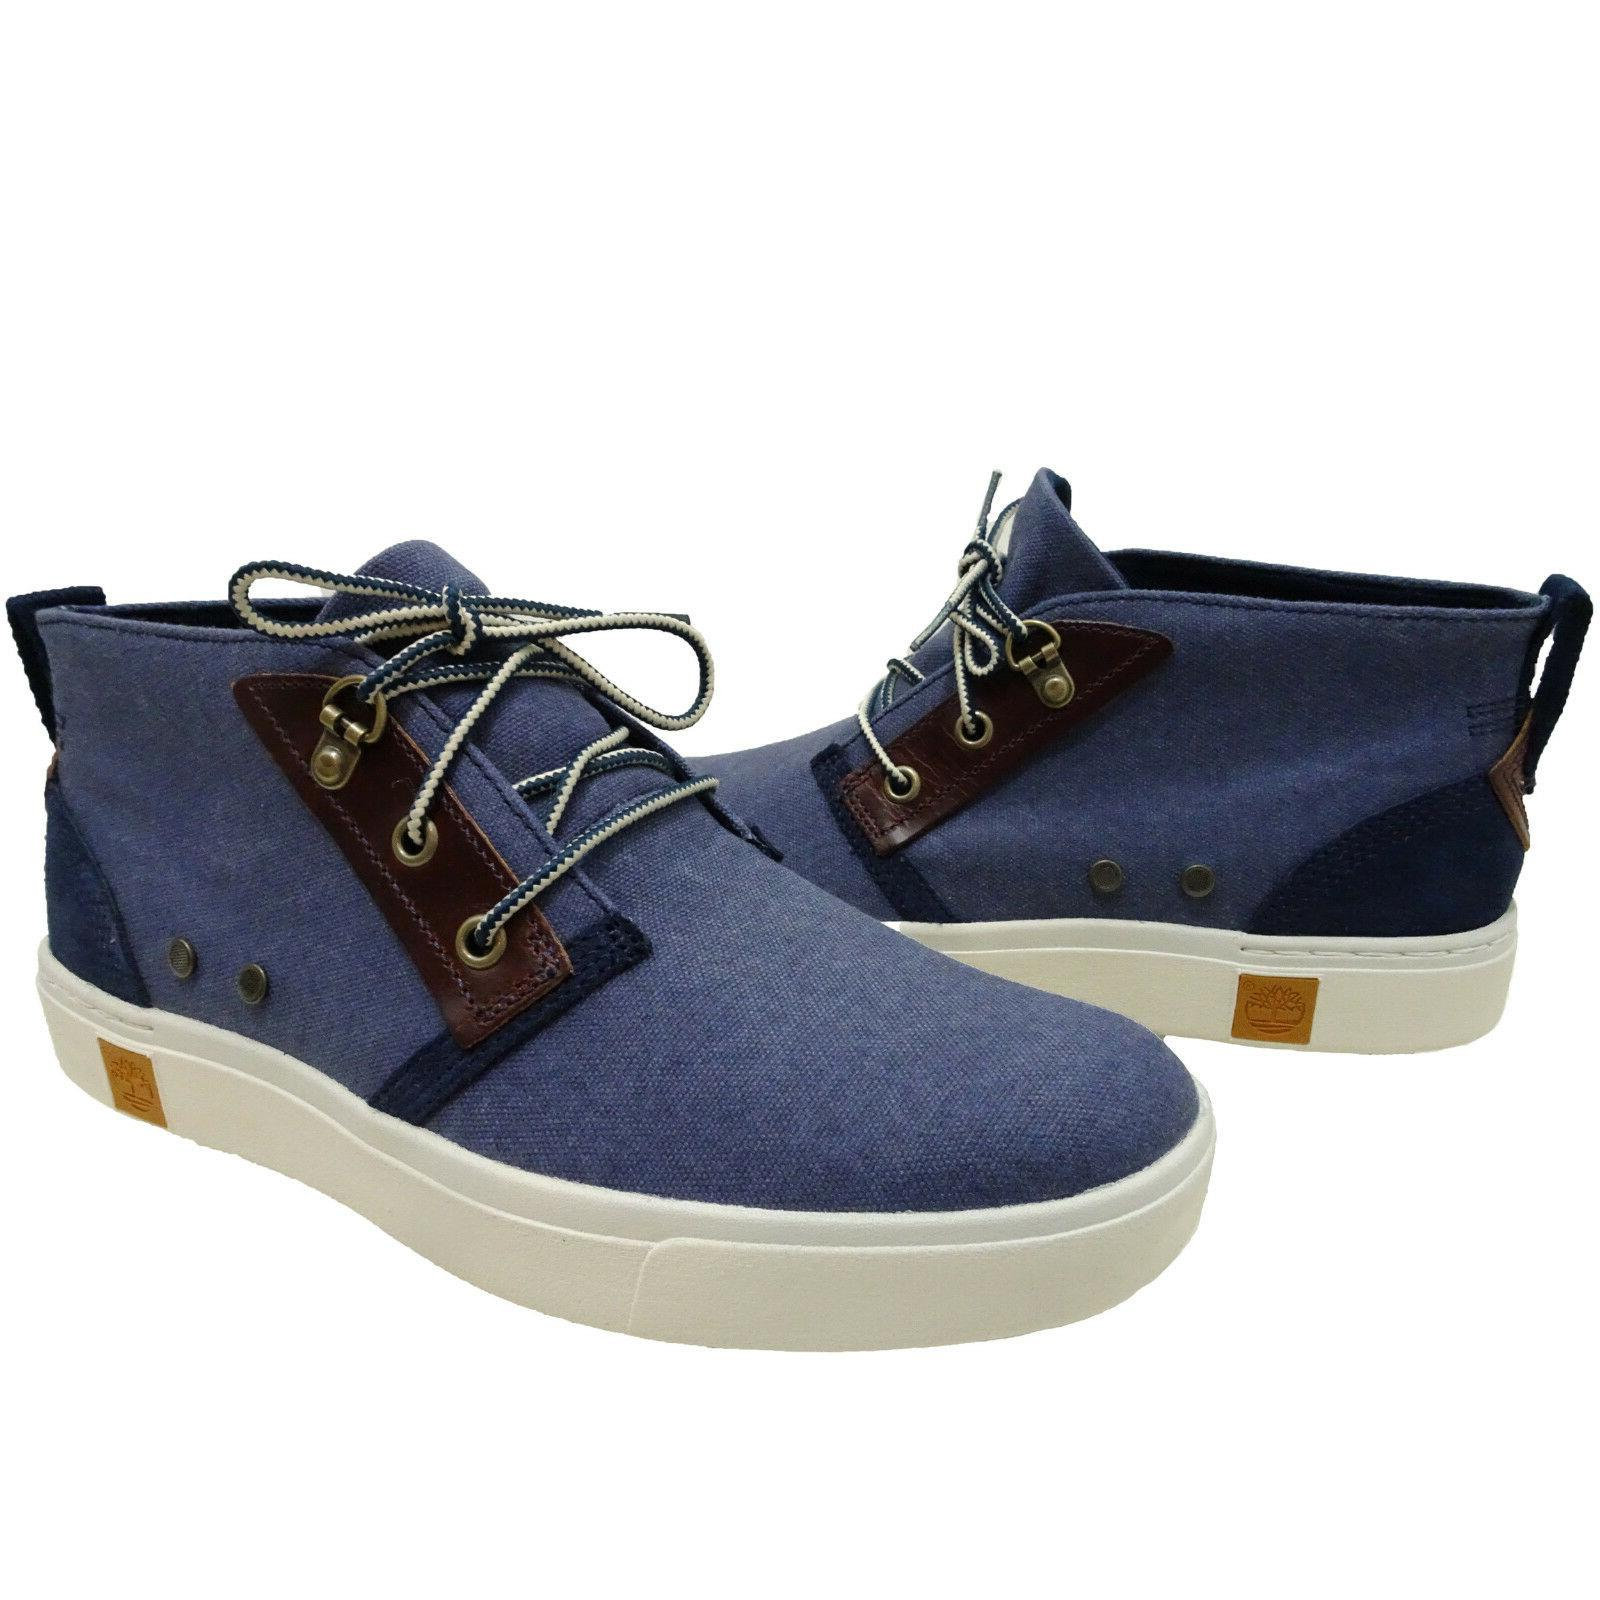 Timberland Mens Amherst Chukka A1709 Lace Up Casual